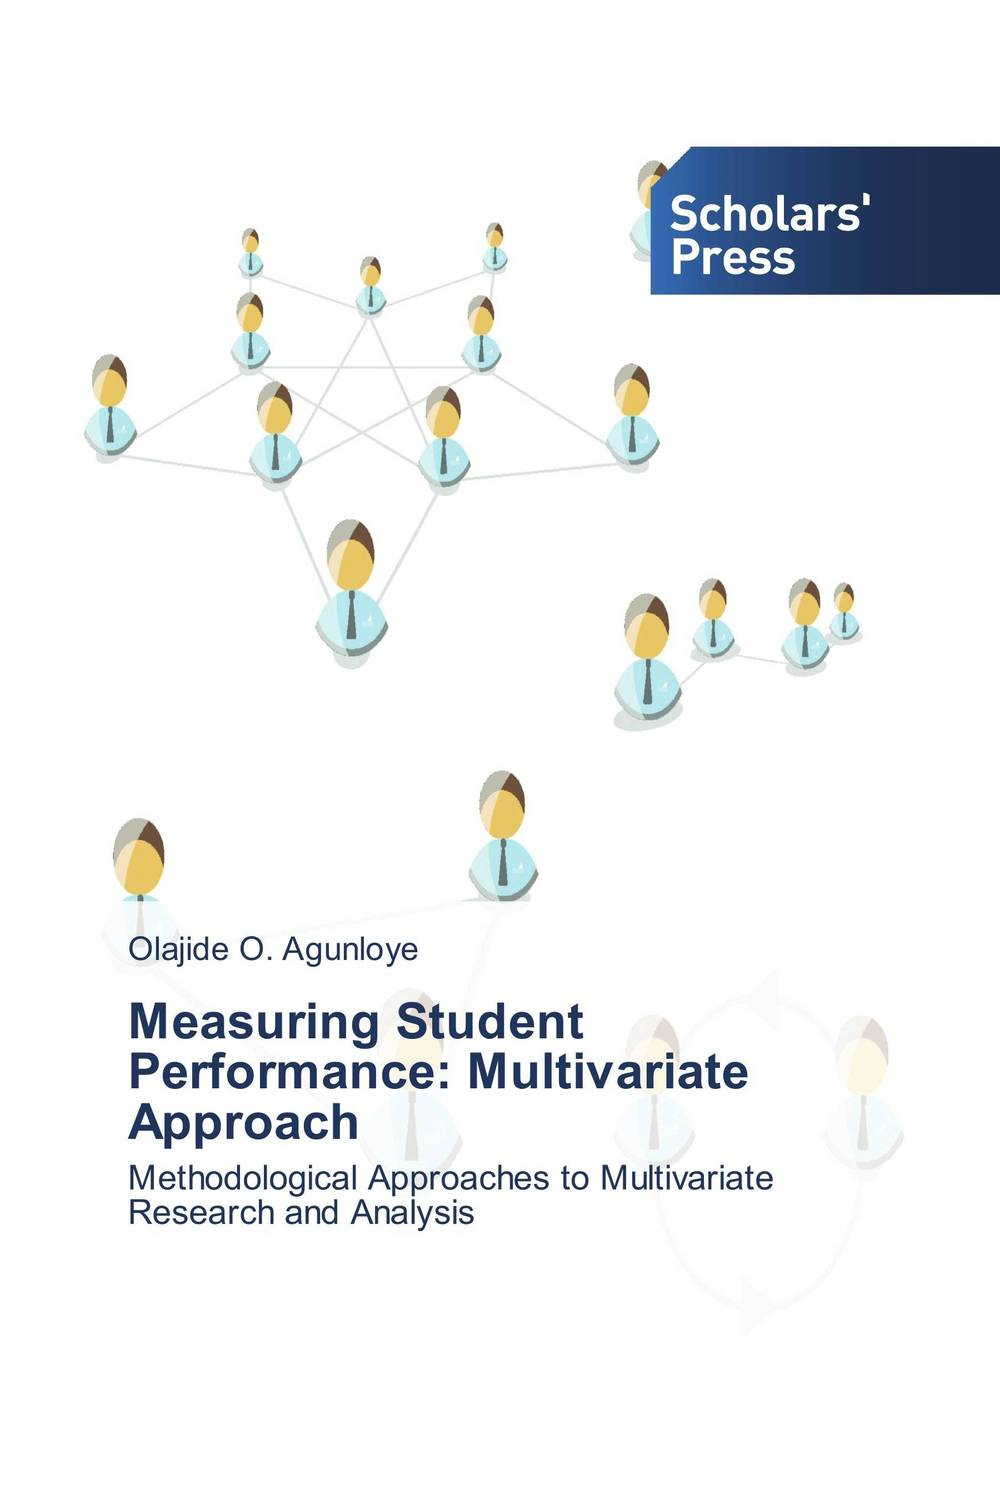 Measuring Student Performance: Multivariate Approach fundamentals of physics extended 9th edition international student version with wileyplus set